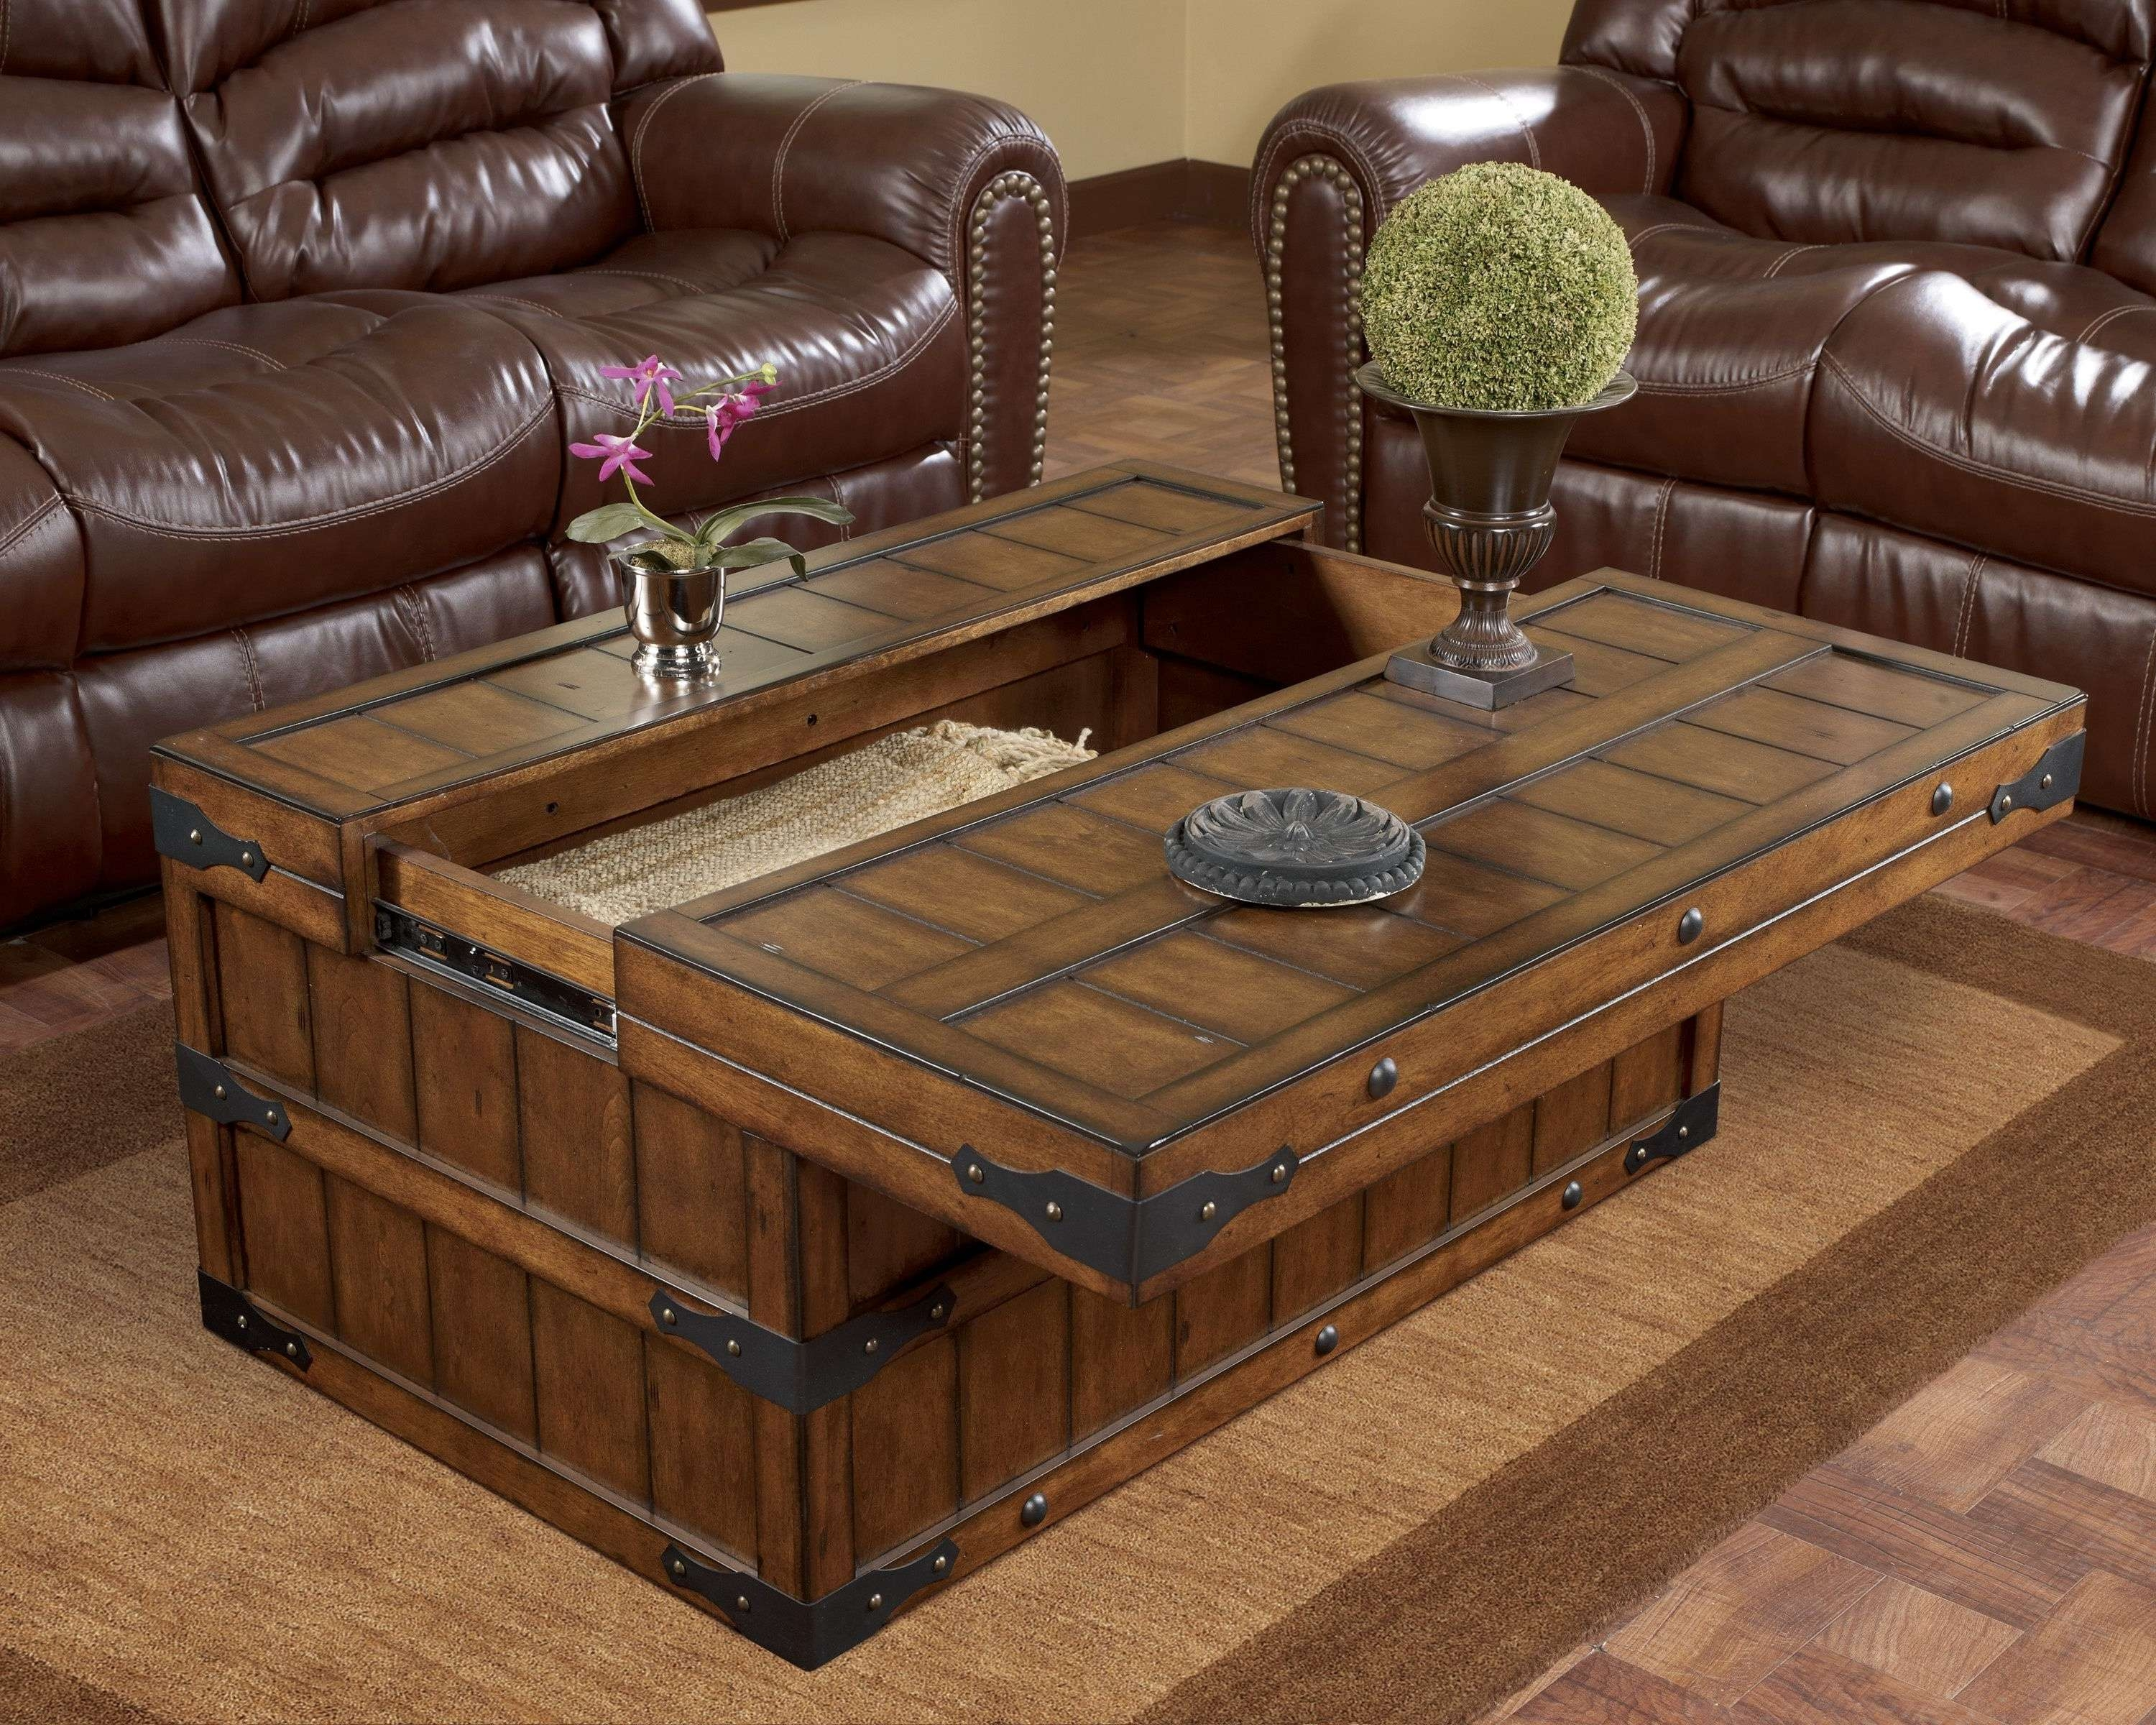 Most Popular Large Square Coffee Table With Storage Pertaining To Coffee Table : Large Square Coffee Table With Storage Barnwood Diy (View 20 of 20)